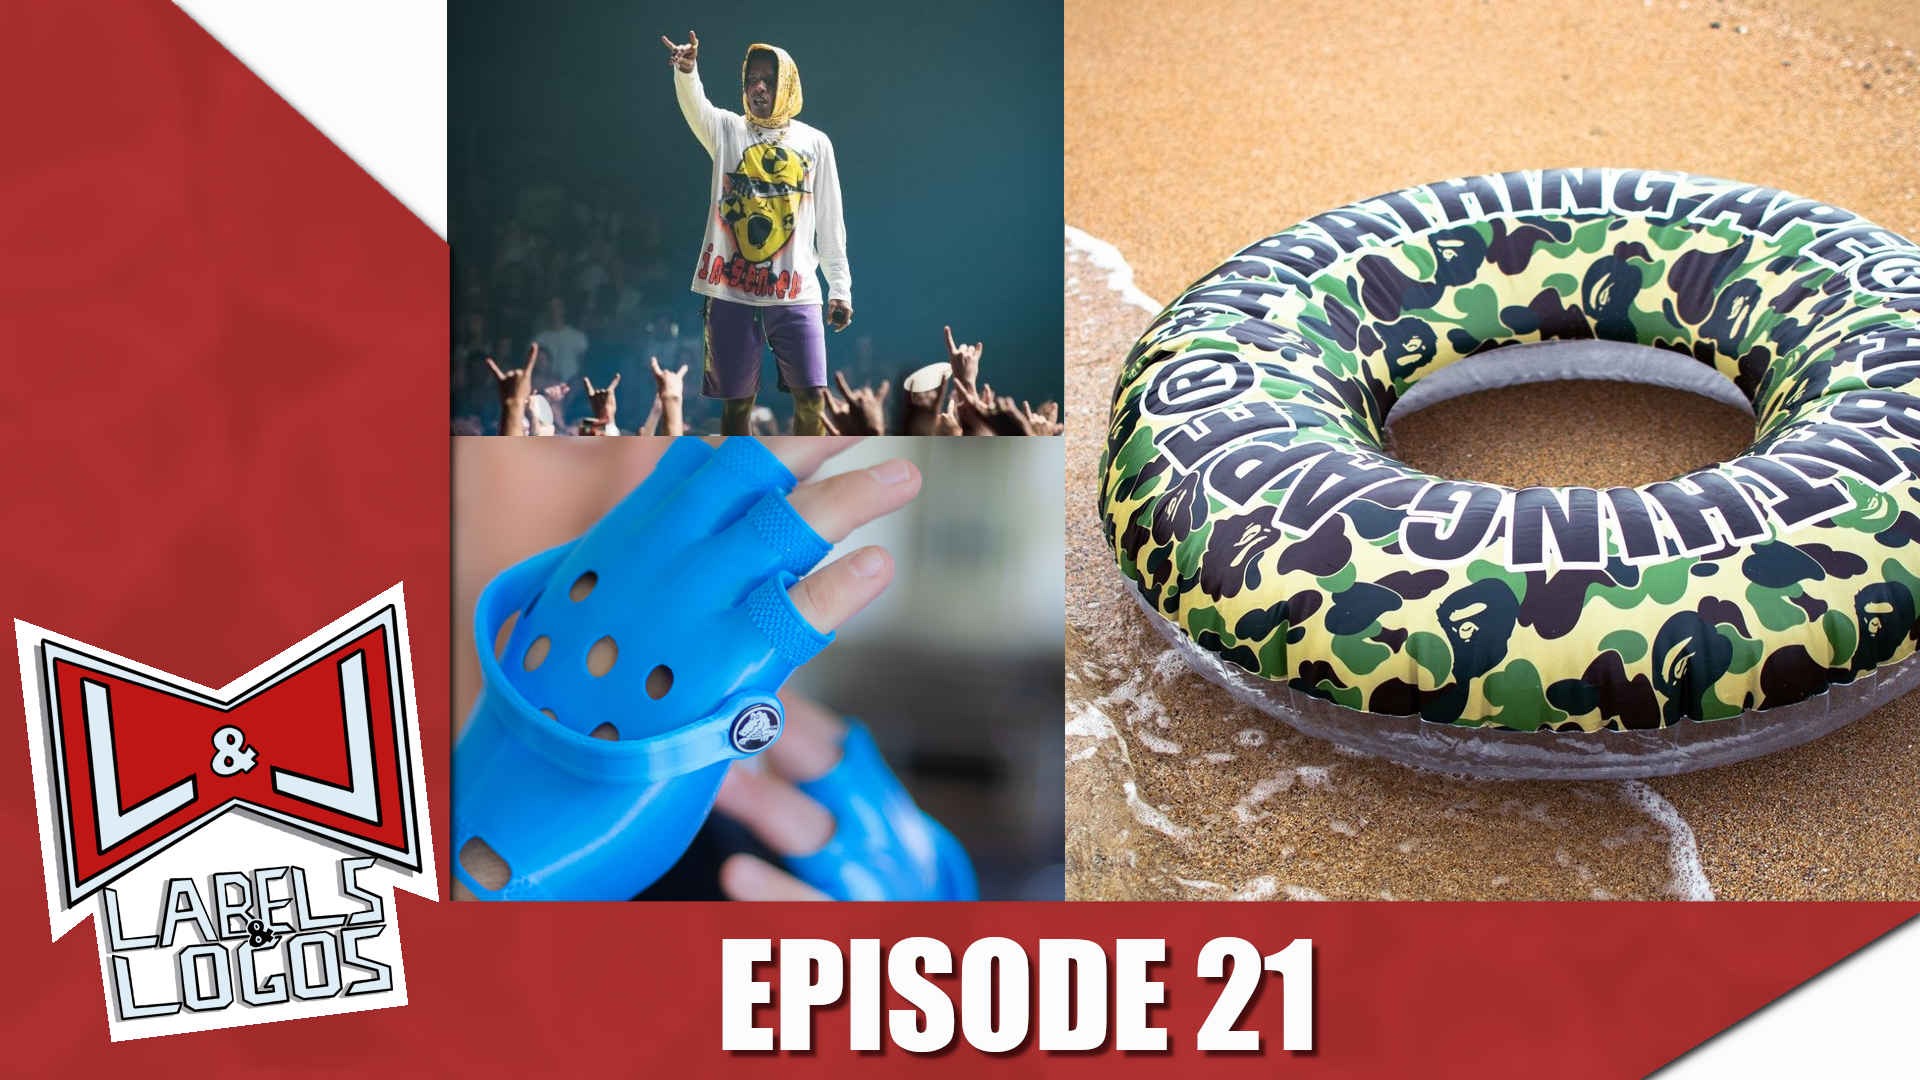 Labels & Logos - Episode 21 - Yeezy Day